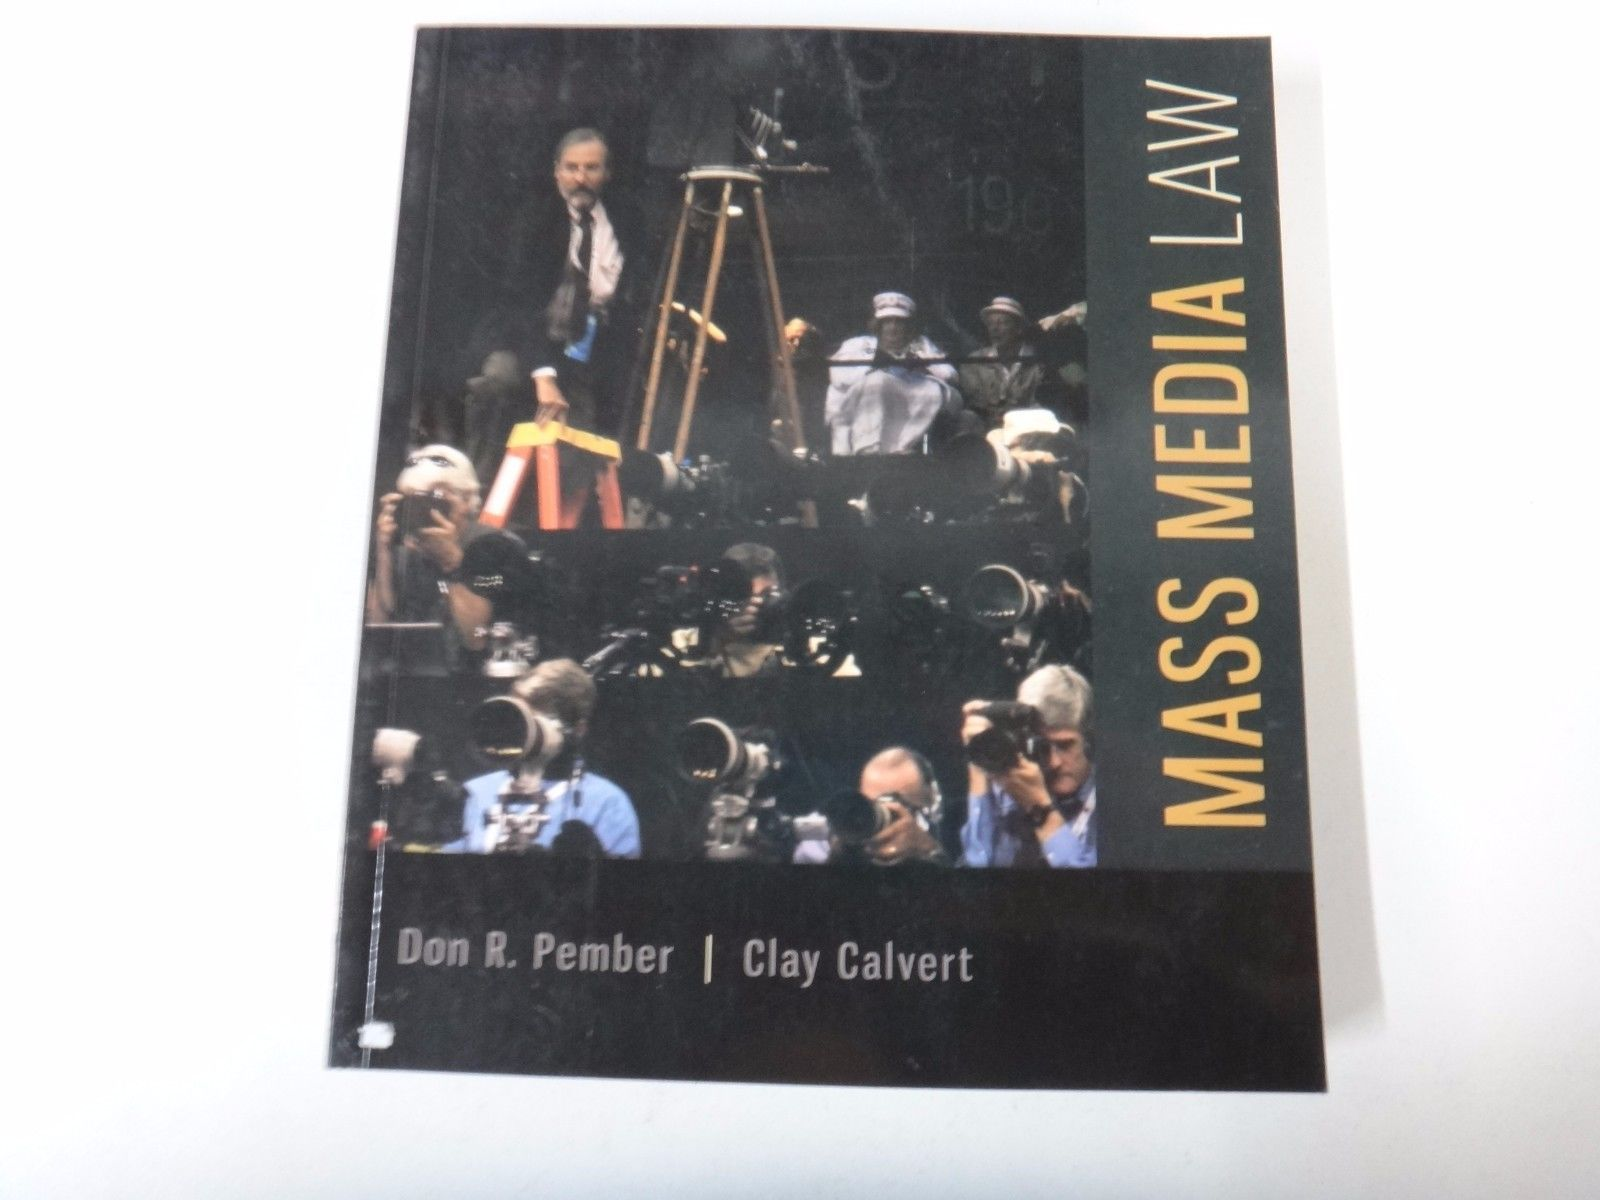 052 Mass Media Law by Don Pember and Clay Calvert (2014 Paperback) https://t.co/5oRigotZR5 https://t.co/mbpcJuXKR9